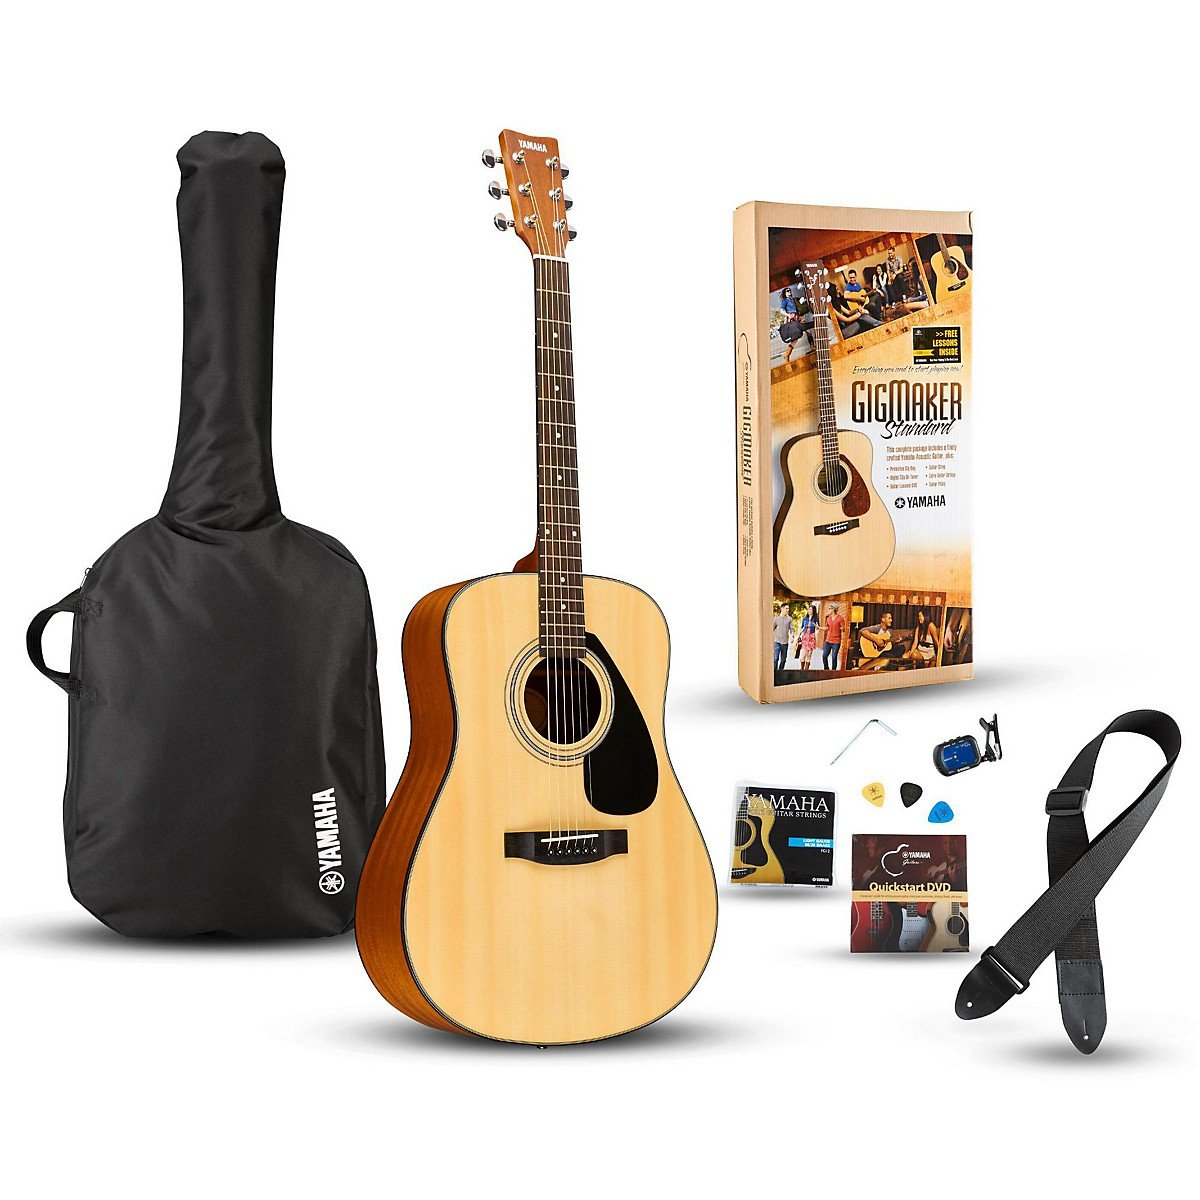 Yamaha Gigmaker Standard - Acoustic Guitar